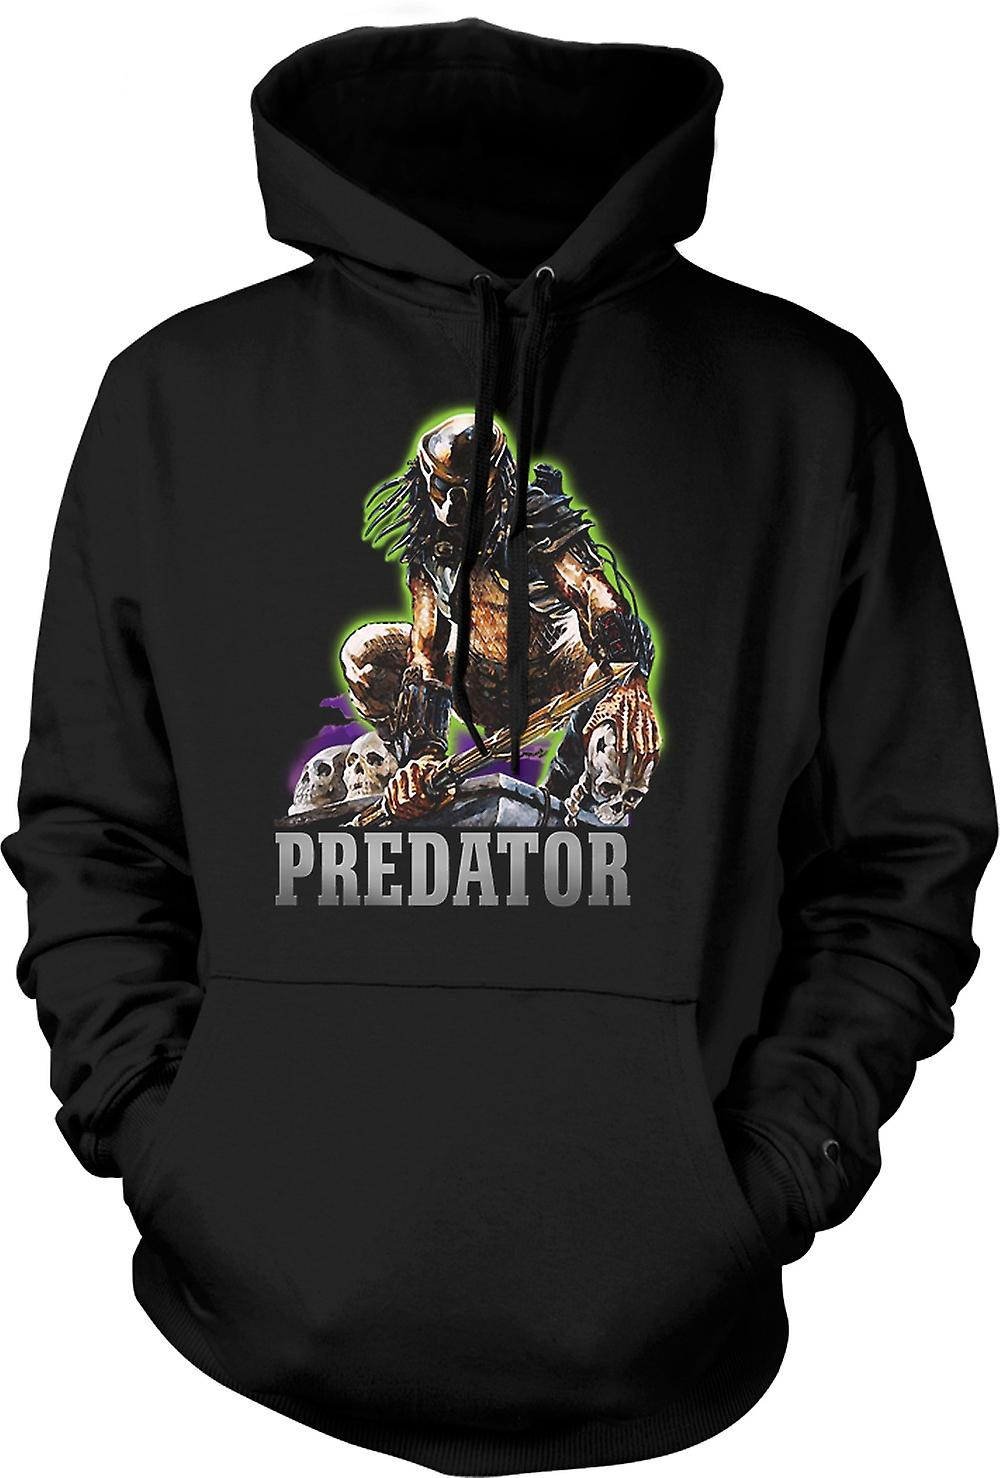 Mens Hoodie - Predator Hunter - klassisk film